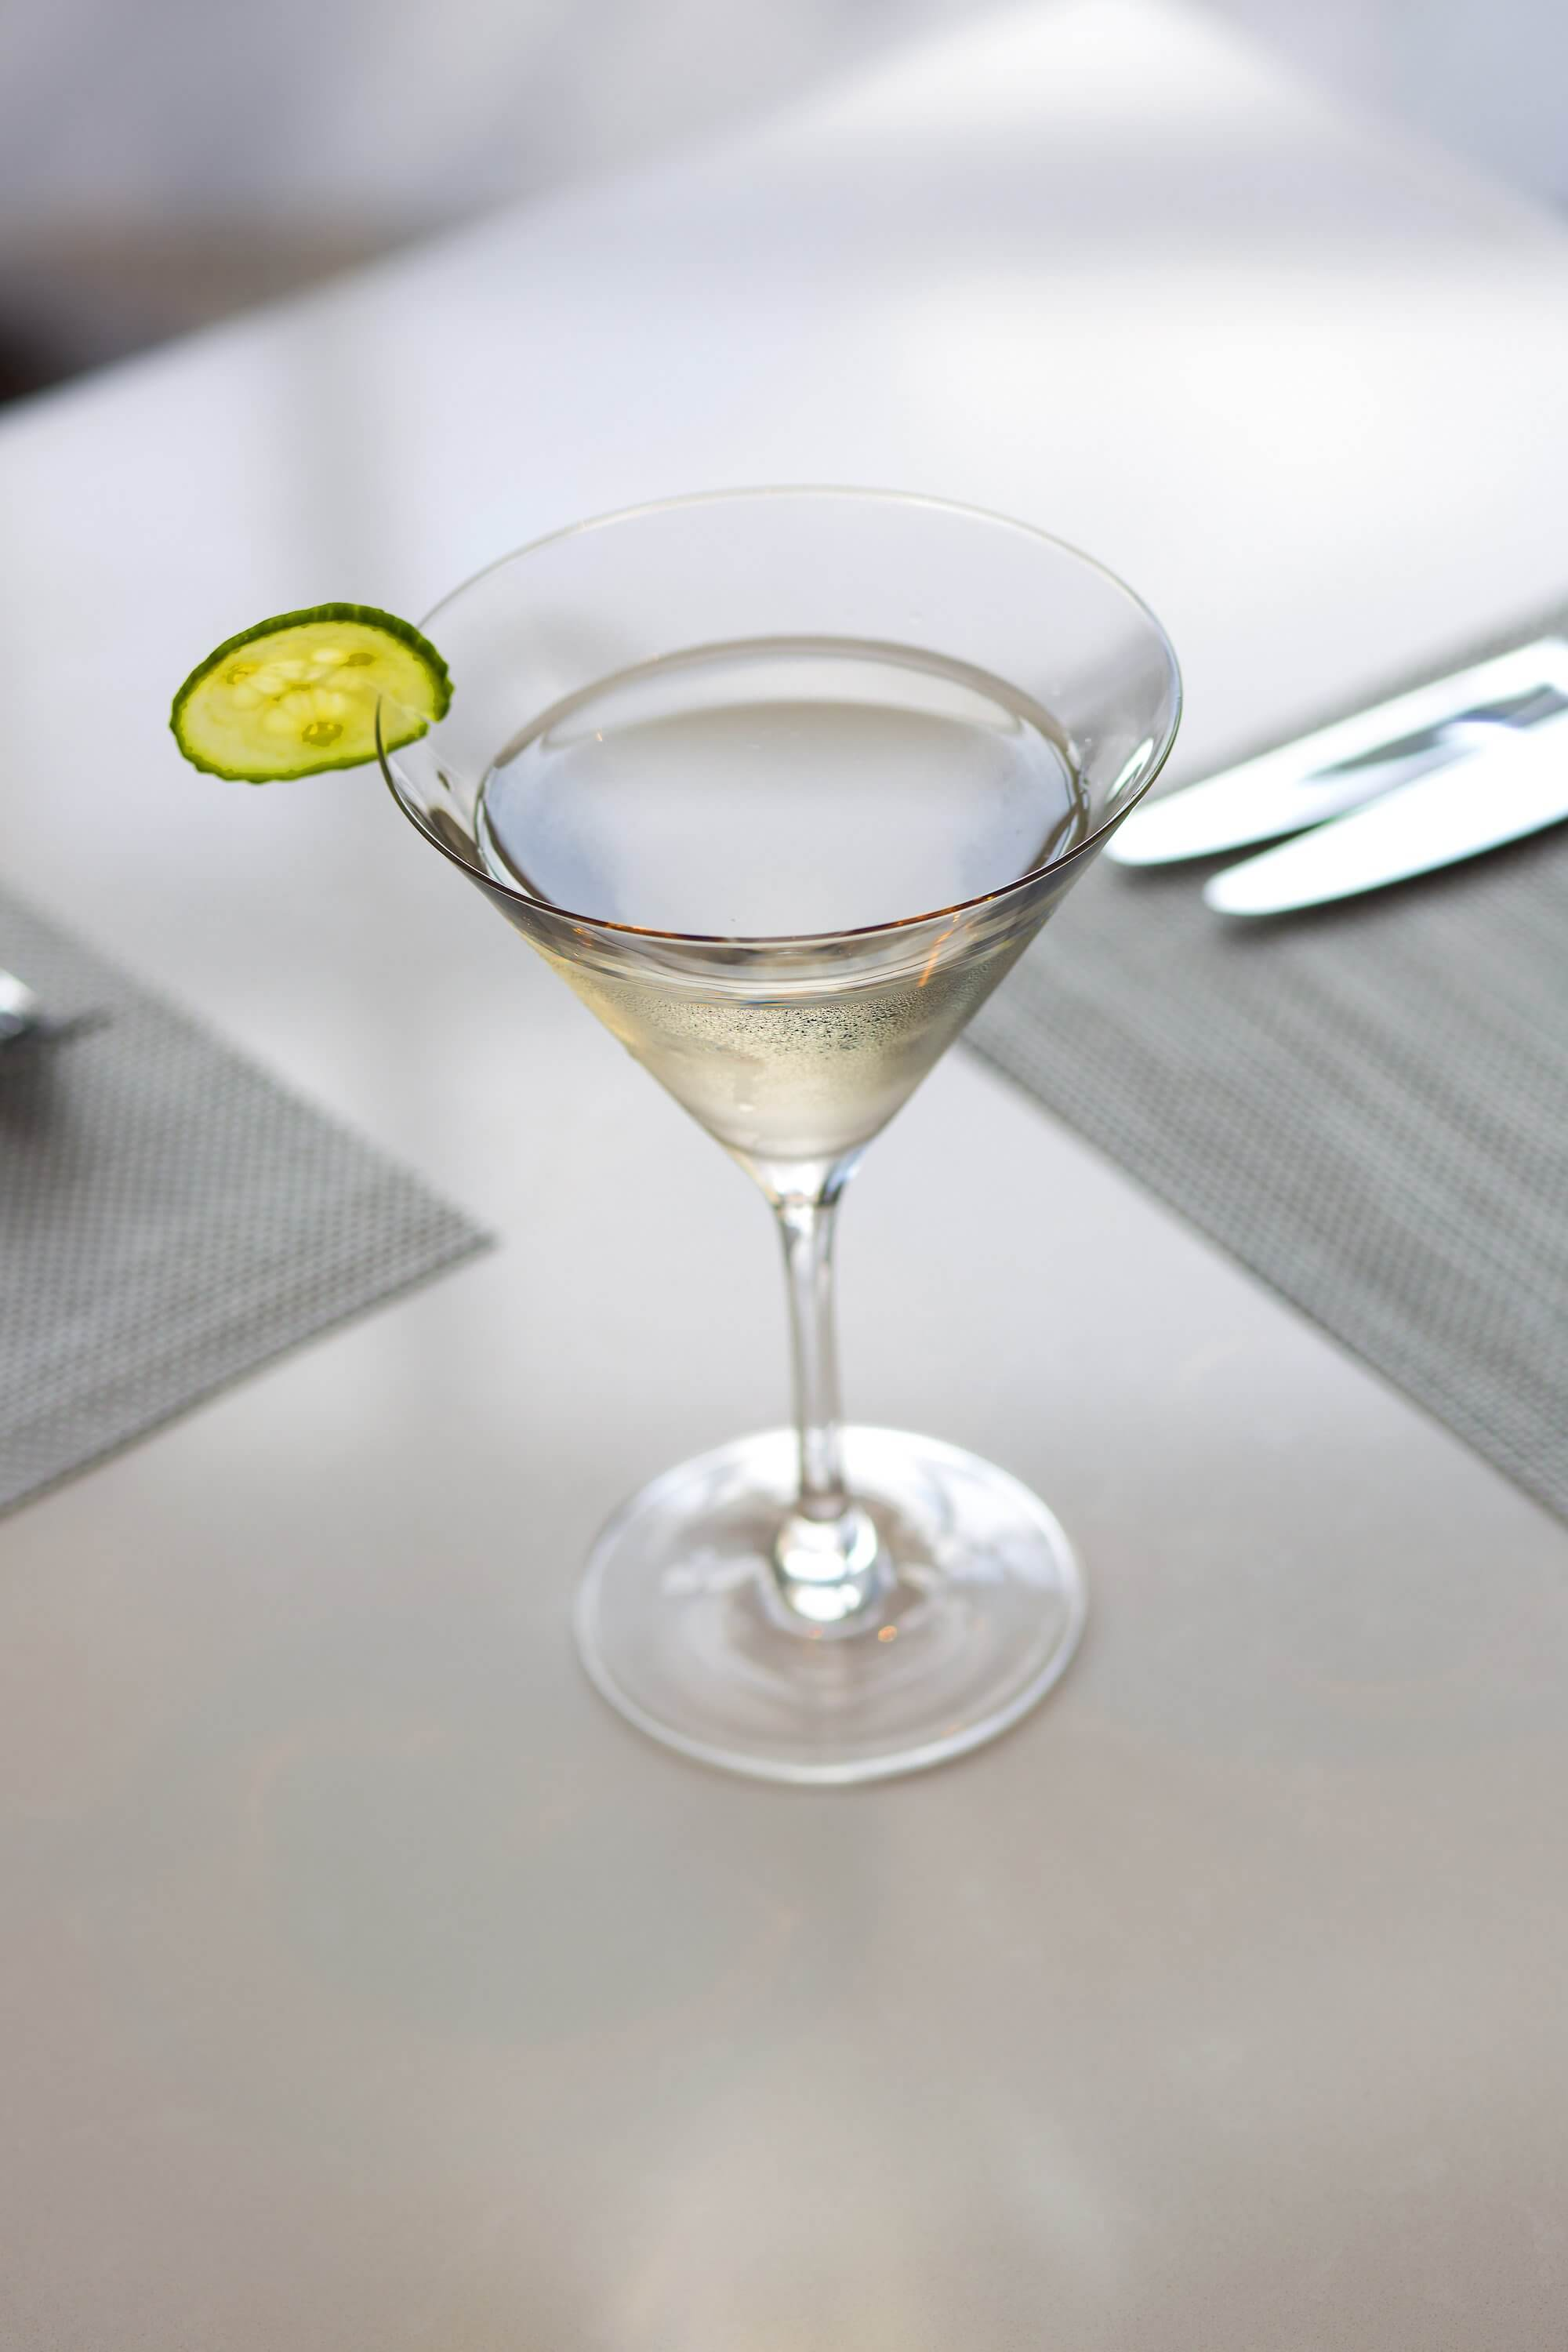 A classic Martini averages 124 calories per drink